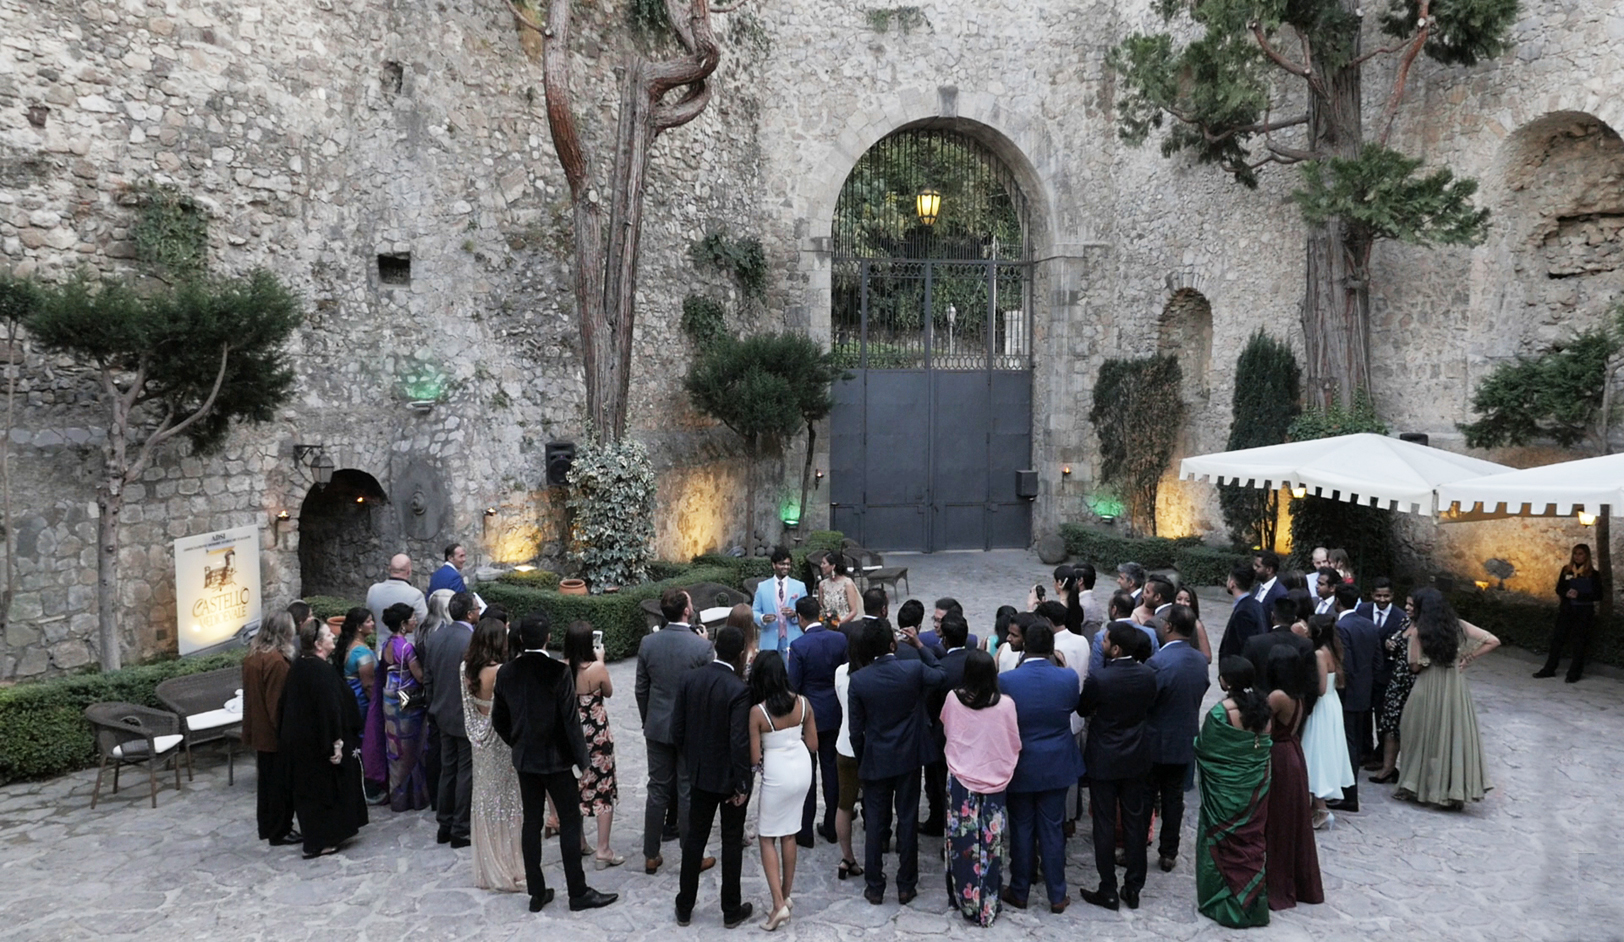 matrimonio-indiano-video-castello-medievale-sorrento-1.jpg